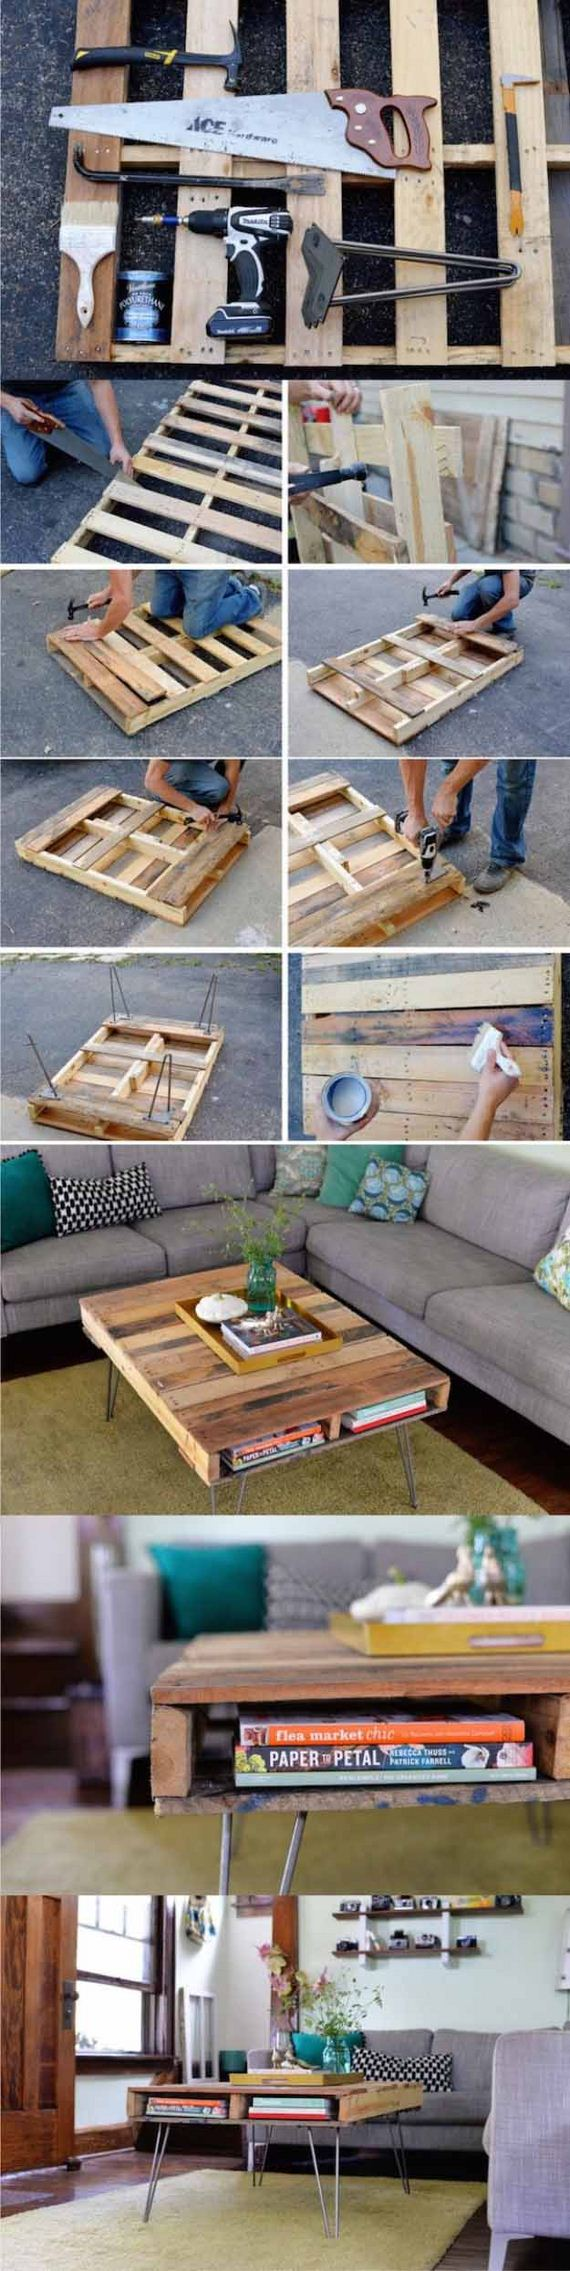 03-DIY-Coffee-Table-Projects